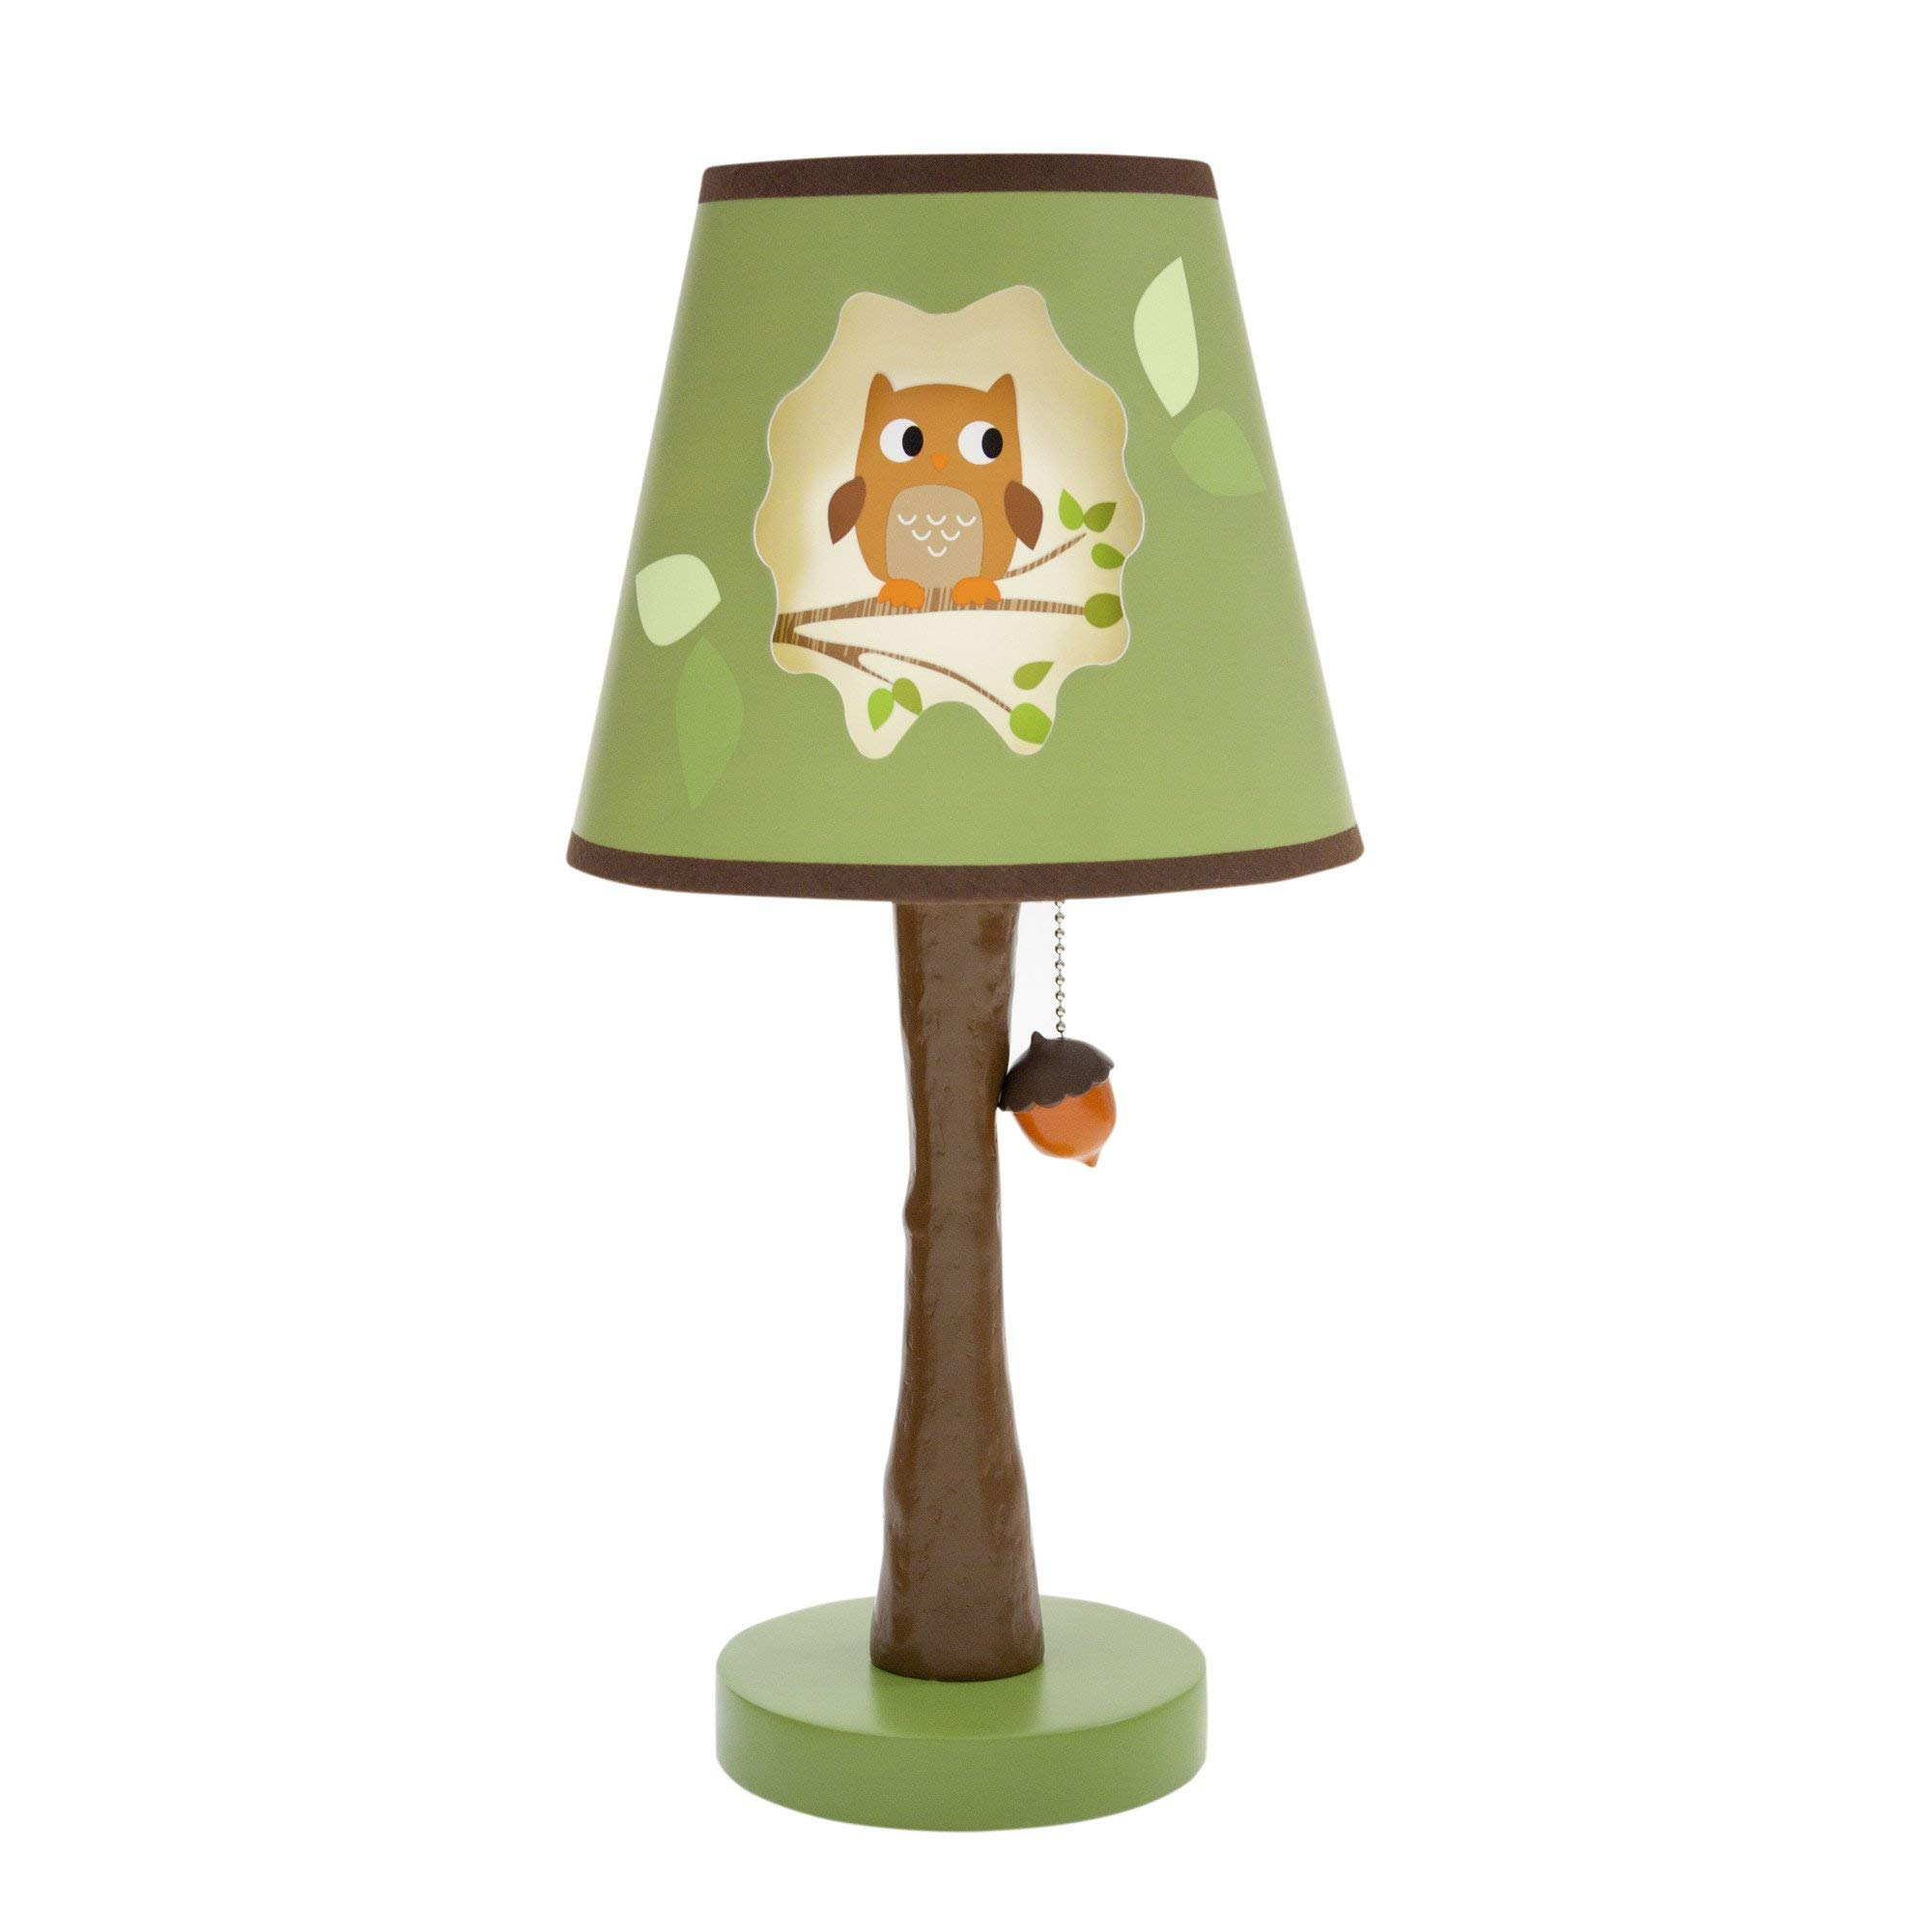 Lambs & Ivy Woodland Tales Lamp with Shade & Bulb - Brown, Green, Woodland, Owl